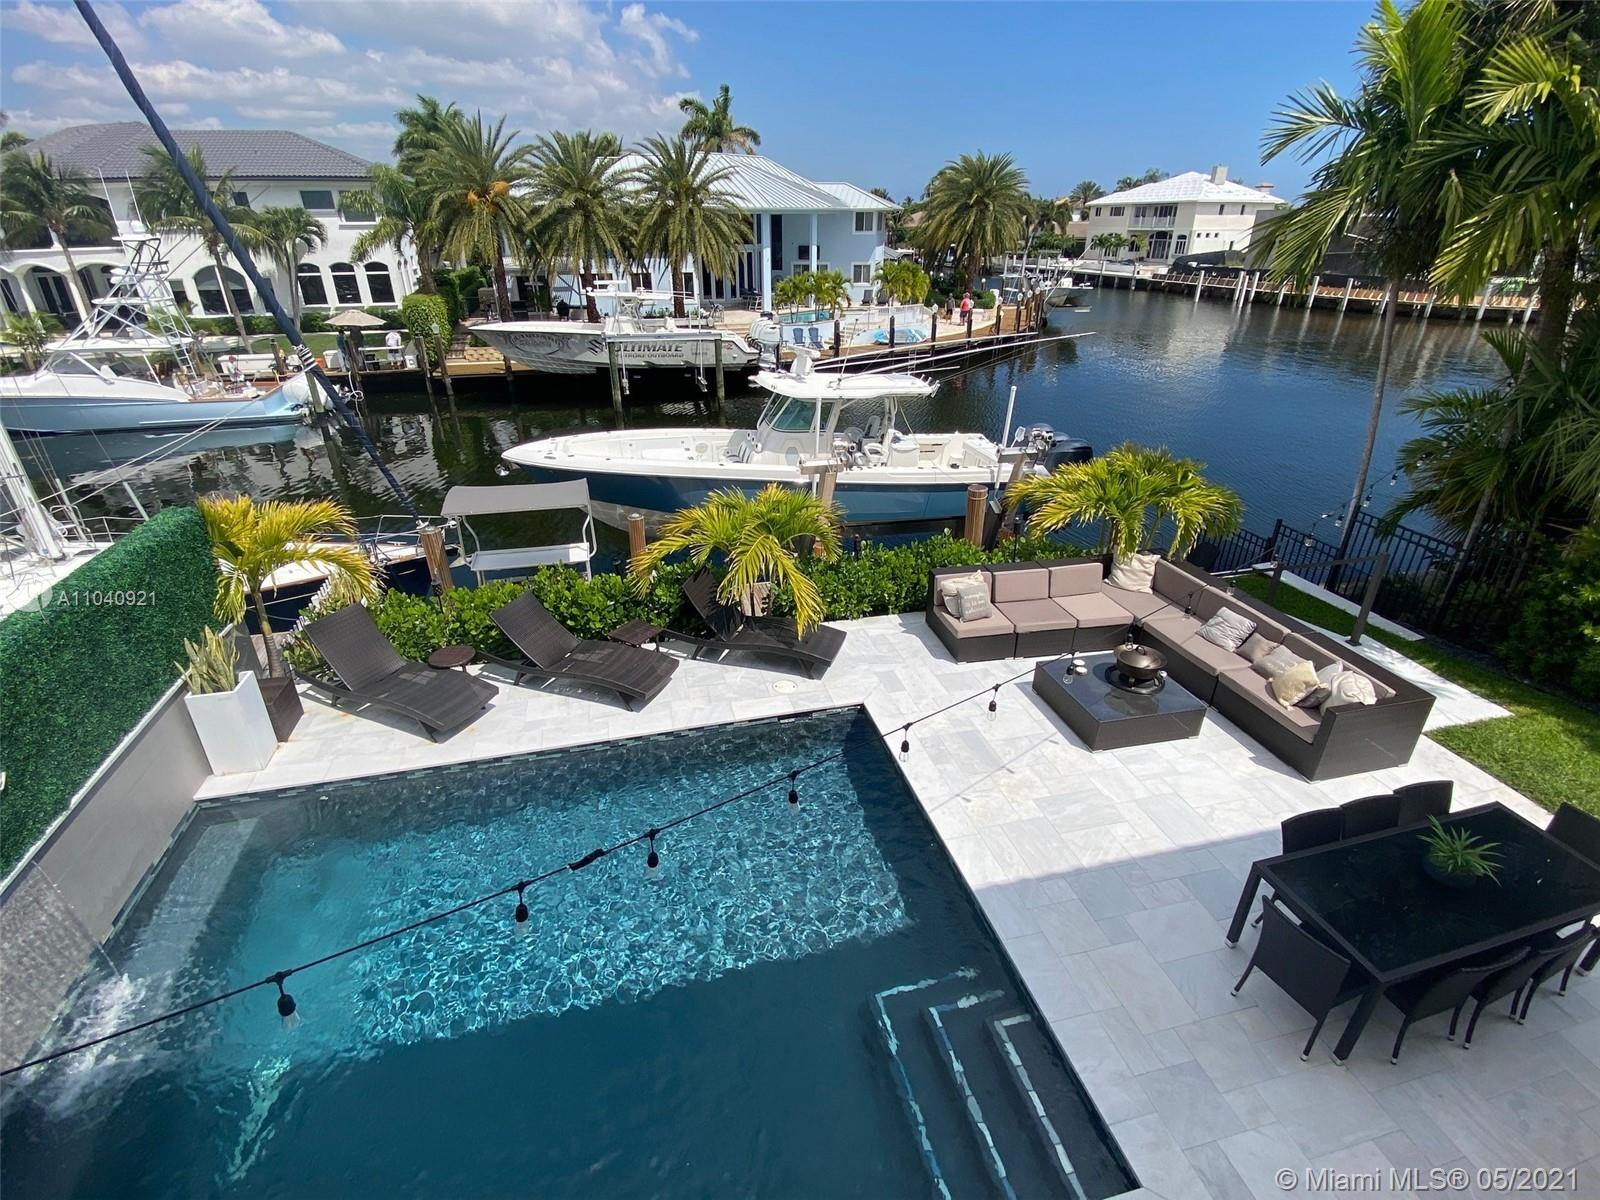 LUXURIOUS WATERFRONT ESTATE! A YACHT OWNER'S DREAM WITH 45' PRIVATE DOCK! BRAND NEW 20,000 LB BOAT LIFT AND DOCK! MODERNLY REMODELED POOL HOME is right on E Sample Road with multi-million-dollar mansions- on deep water frontage>5-8 minutes to direct Atlantic ocean access with no fixed bridges-This stunning MODERN custom residence offers the finest elements of modern architecture. Stunning new Chef's kitchen w/ custom cabinetry is open to living area & overlooking the pool & water. Master bedroom & 2 additional bedroom suites are located on the 2nd level with a large balcony also overlooking the pool & water-1 Bedroom located downstairs can be used for office or guest suite-Remodeled flawlessly!